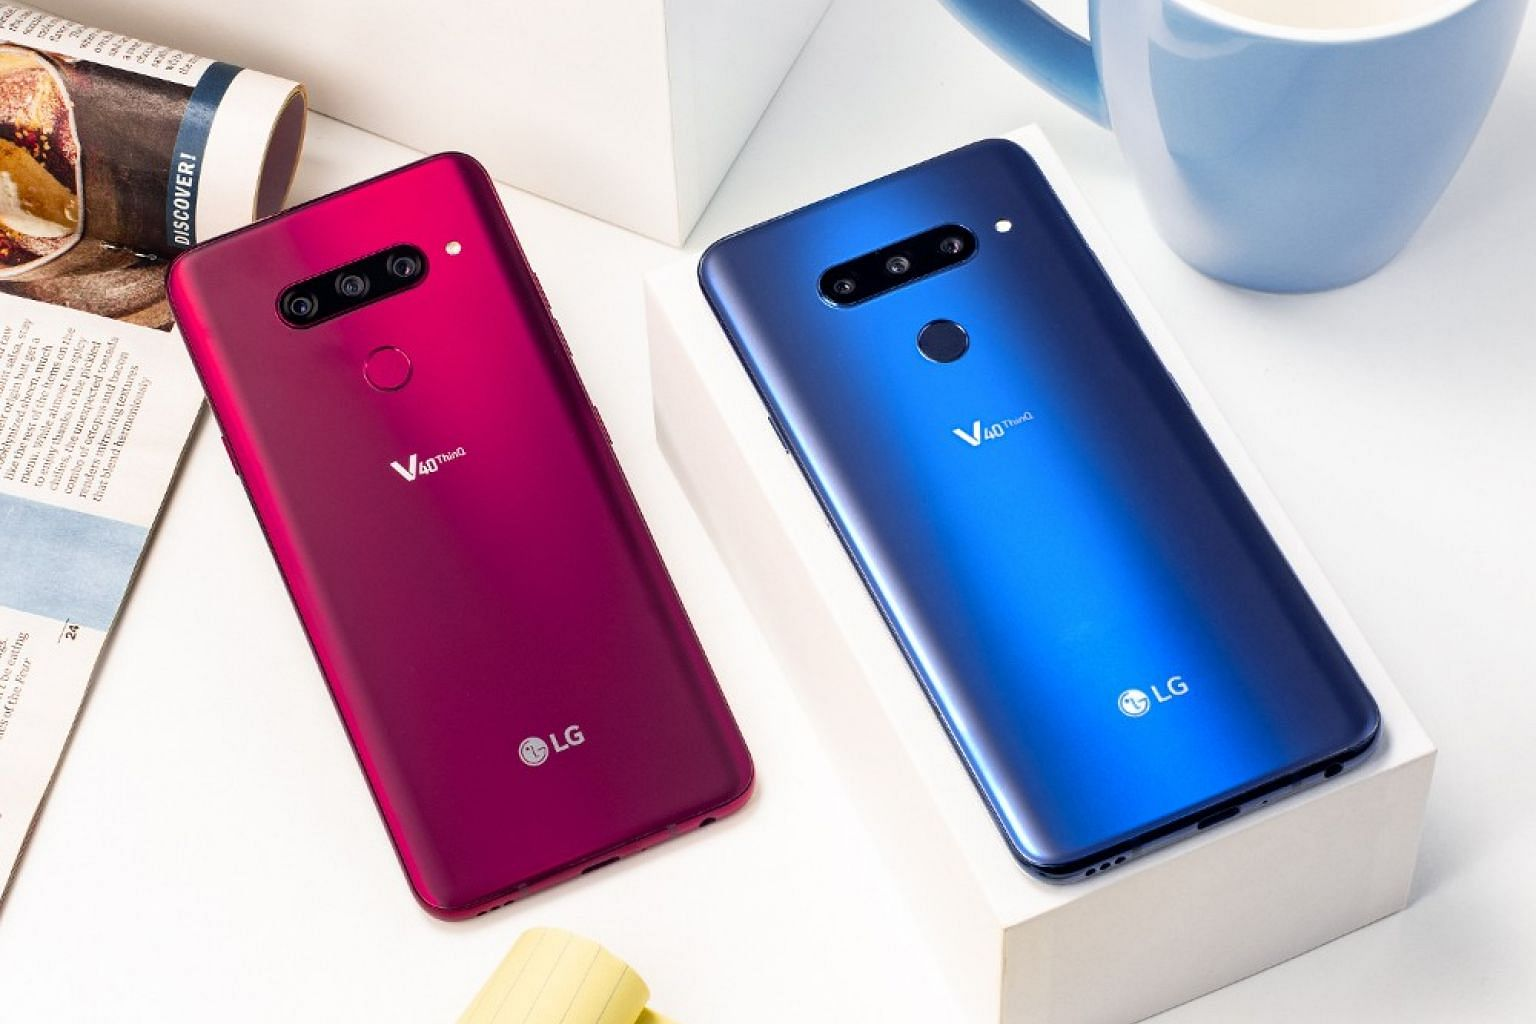 The LG V40 ThinQ has five cameras - three rear cameras and two front cameras. PHOTO: LG